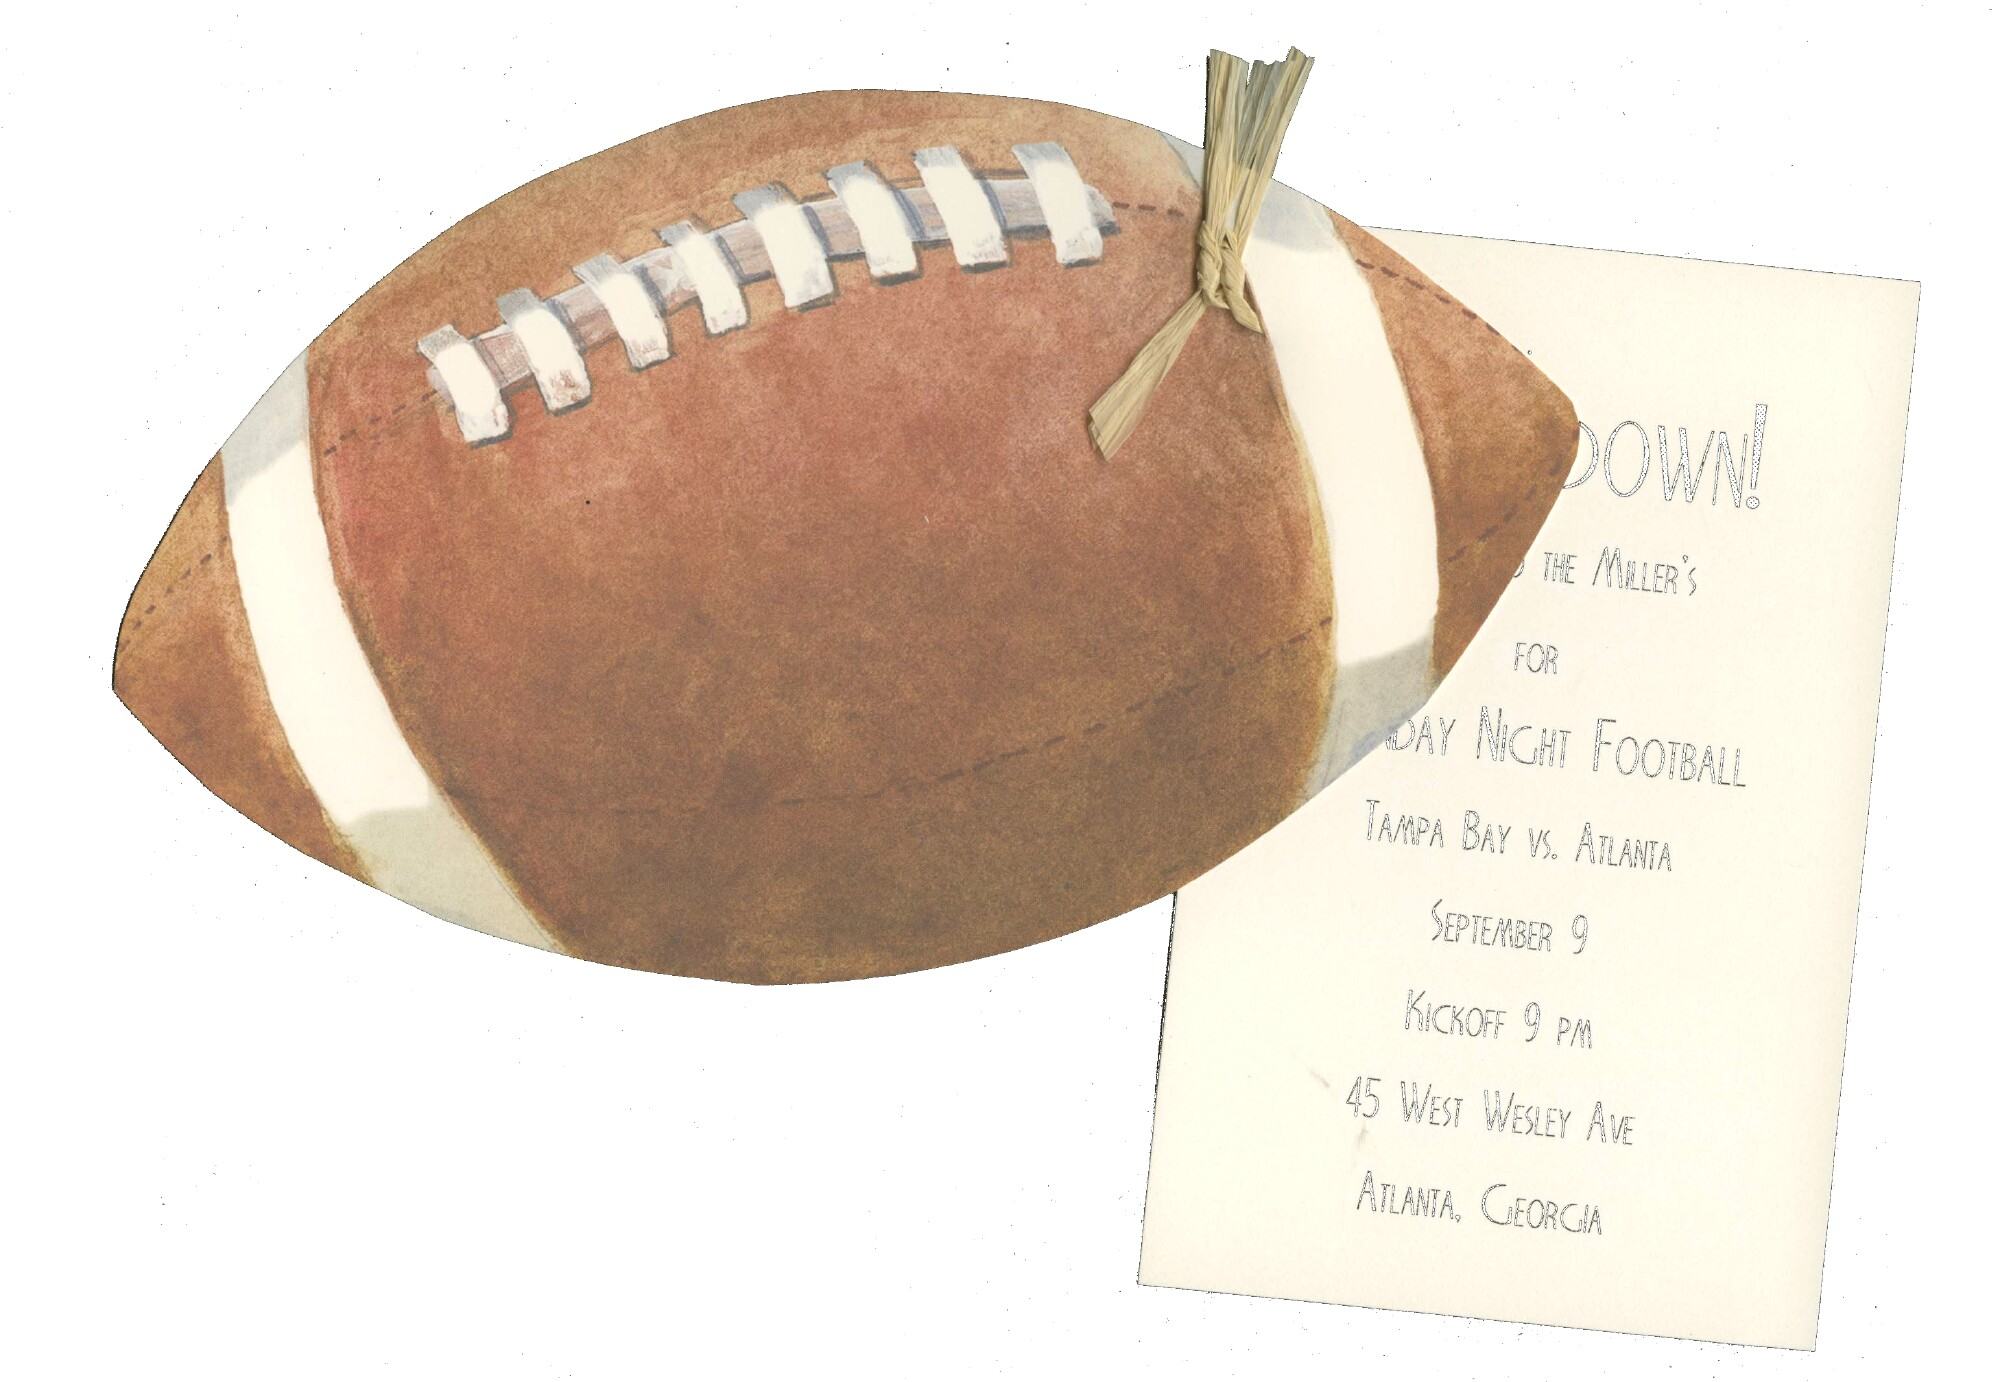 "Football Die-Cut - This fun die-cut football invitation attaches to white imprintable 3.5"" X 5"" card with rafia (included).  Printed only on 80# designer cardstock, card is easy print on your printer or we can print them for you.  Includes white envelopes.  IF YOU NEED US TO ASSEMBLE THE TAG TO THE DIE-CUT CARD, THERE IS AN ADDITIONAL CHARGE OF $.50 PER CARD.  Please make a note in the comments section if you would like us to assemble them."